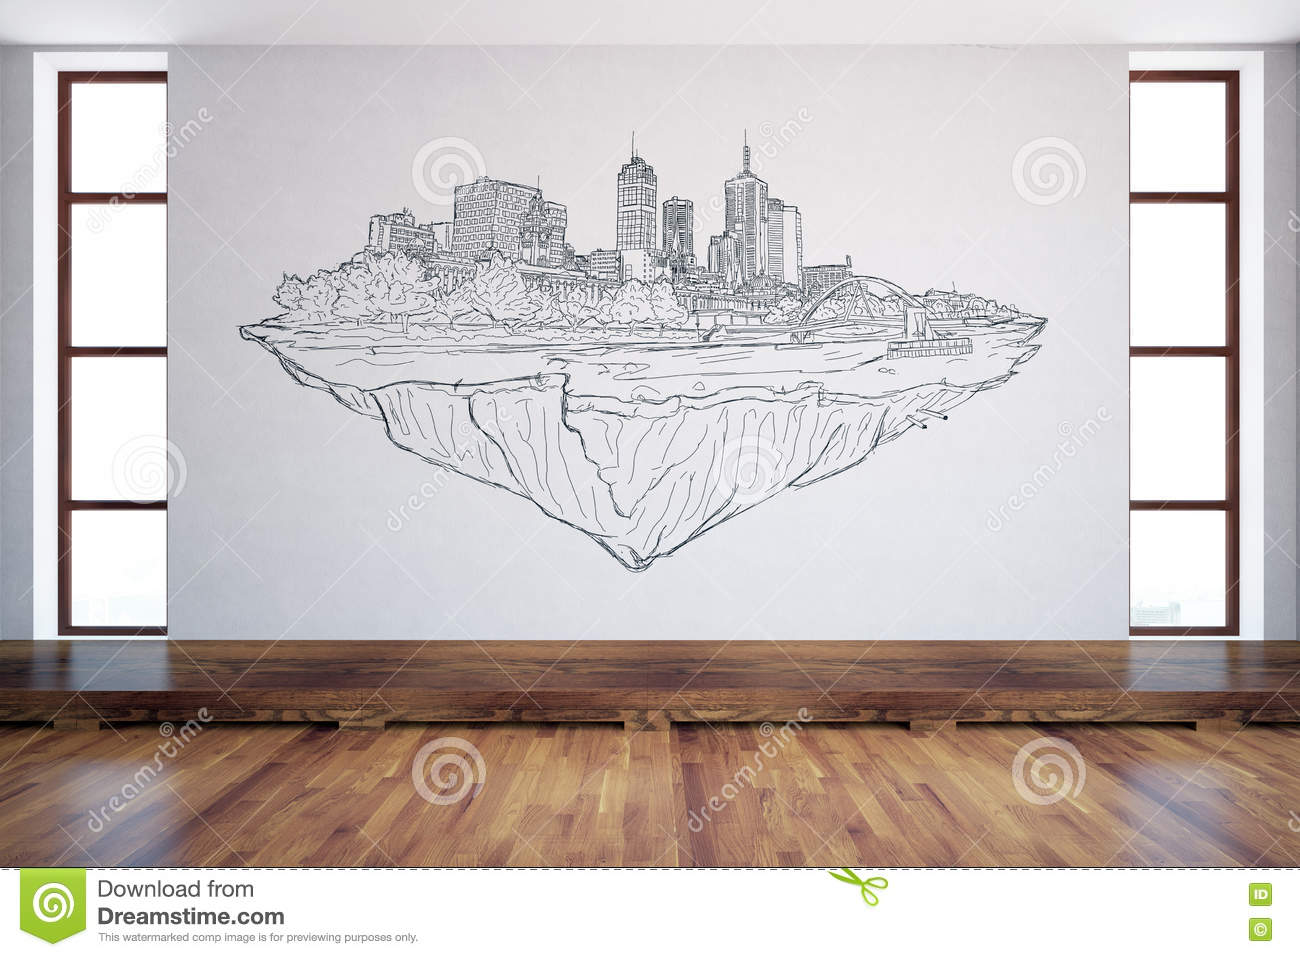 Interior With City Sketch Stock Illustration - Image: 78263281